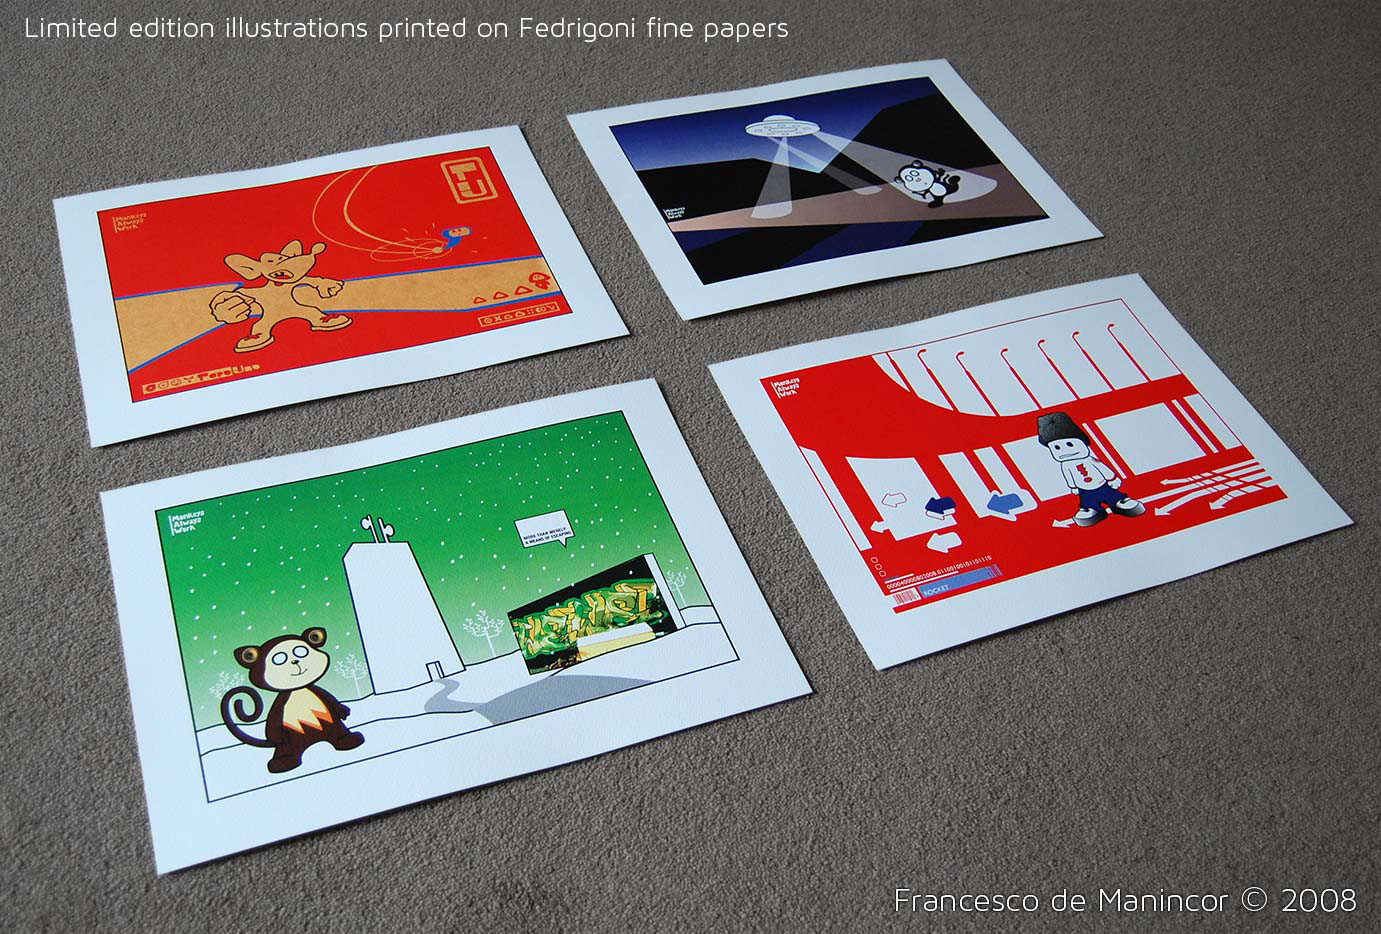 Limited edition prints on Fedrigoni fine papers